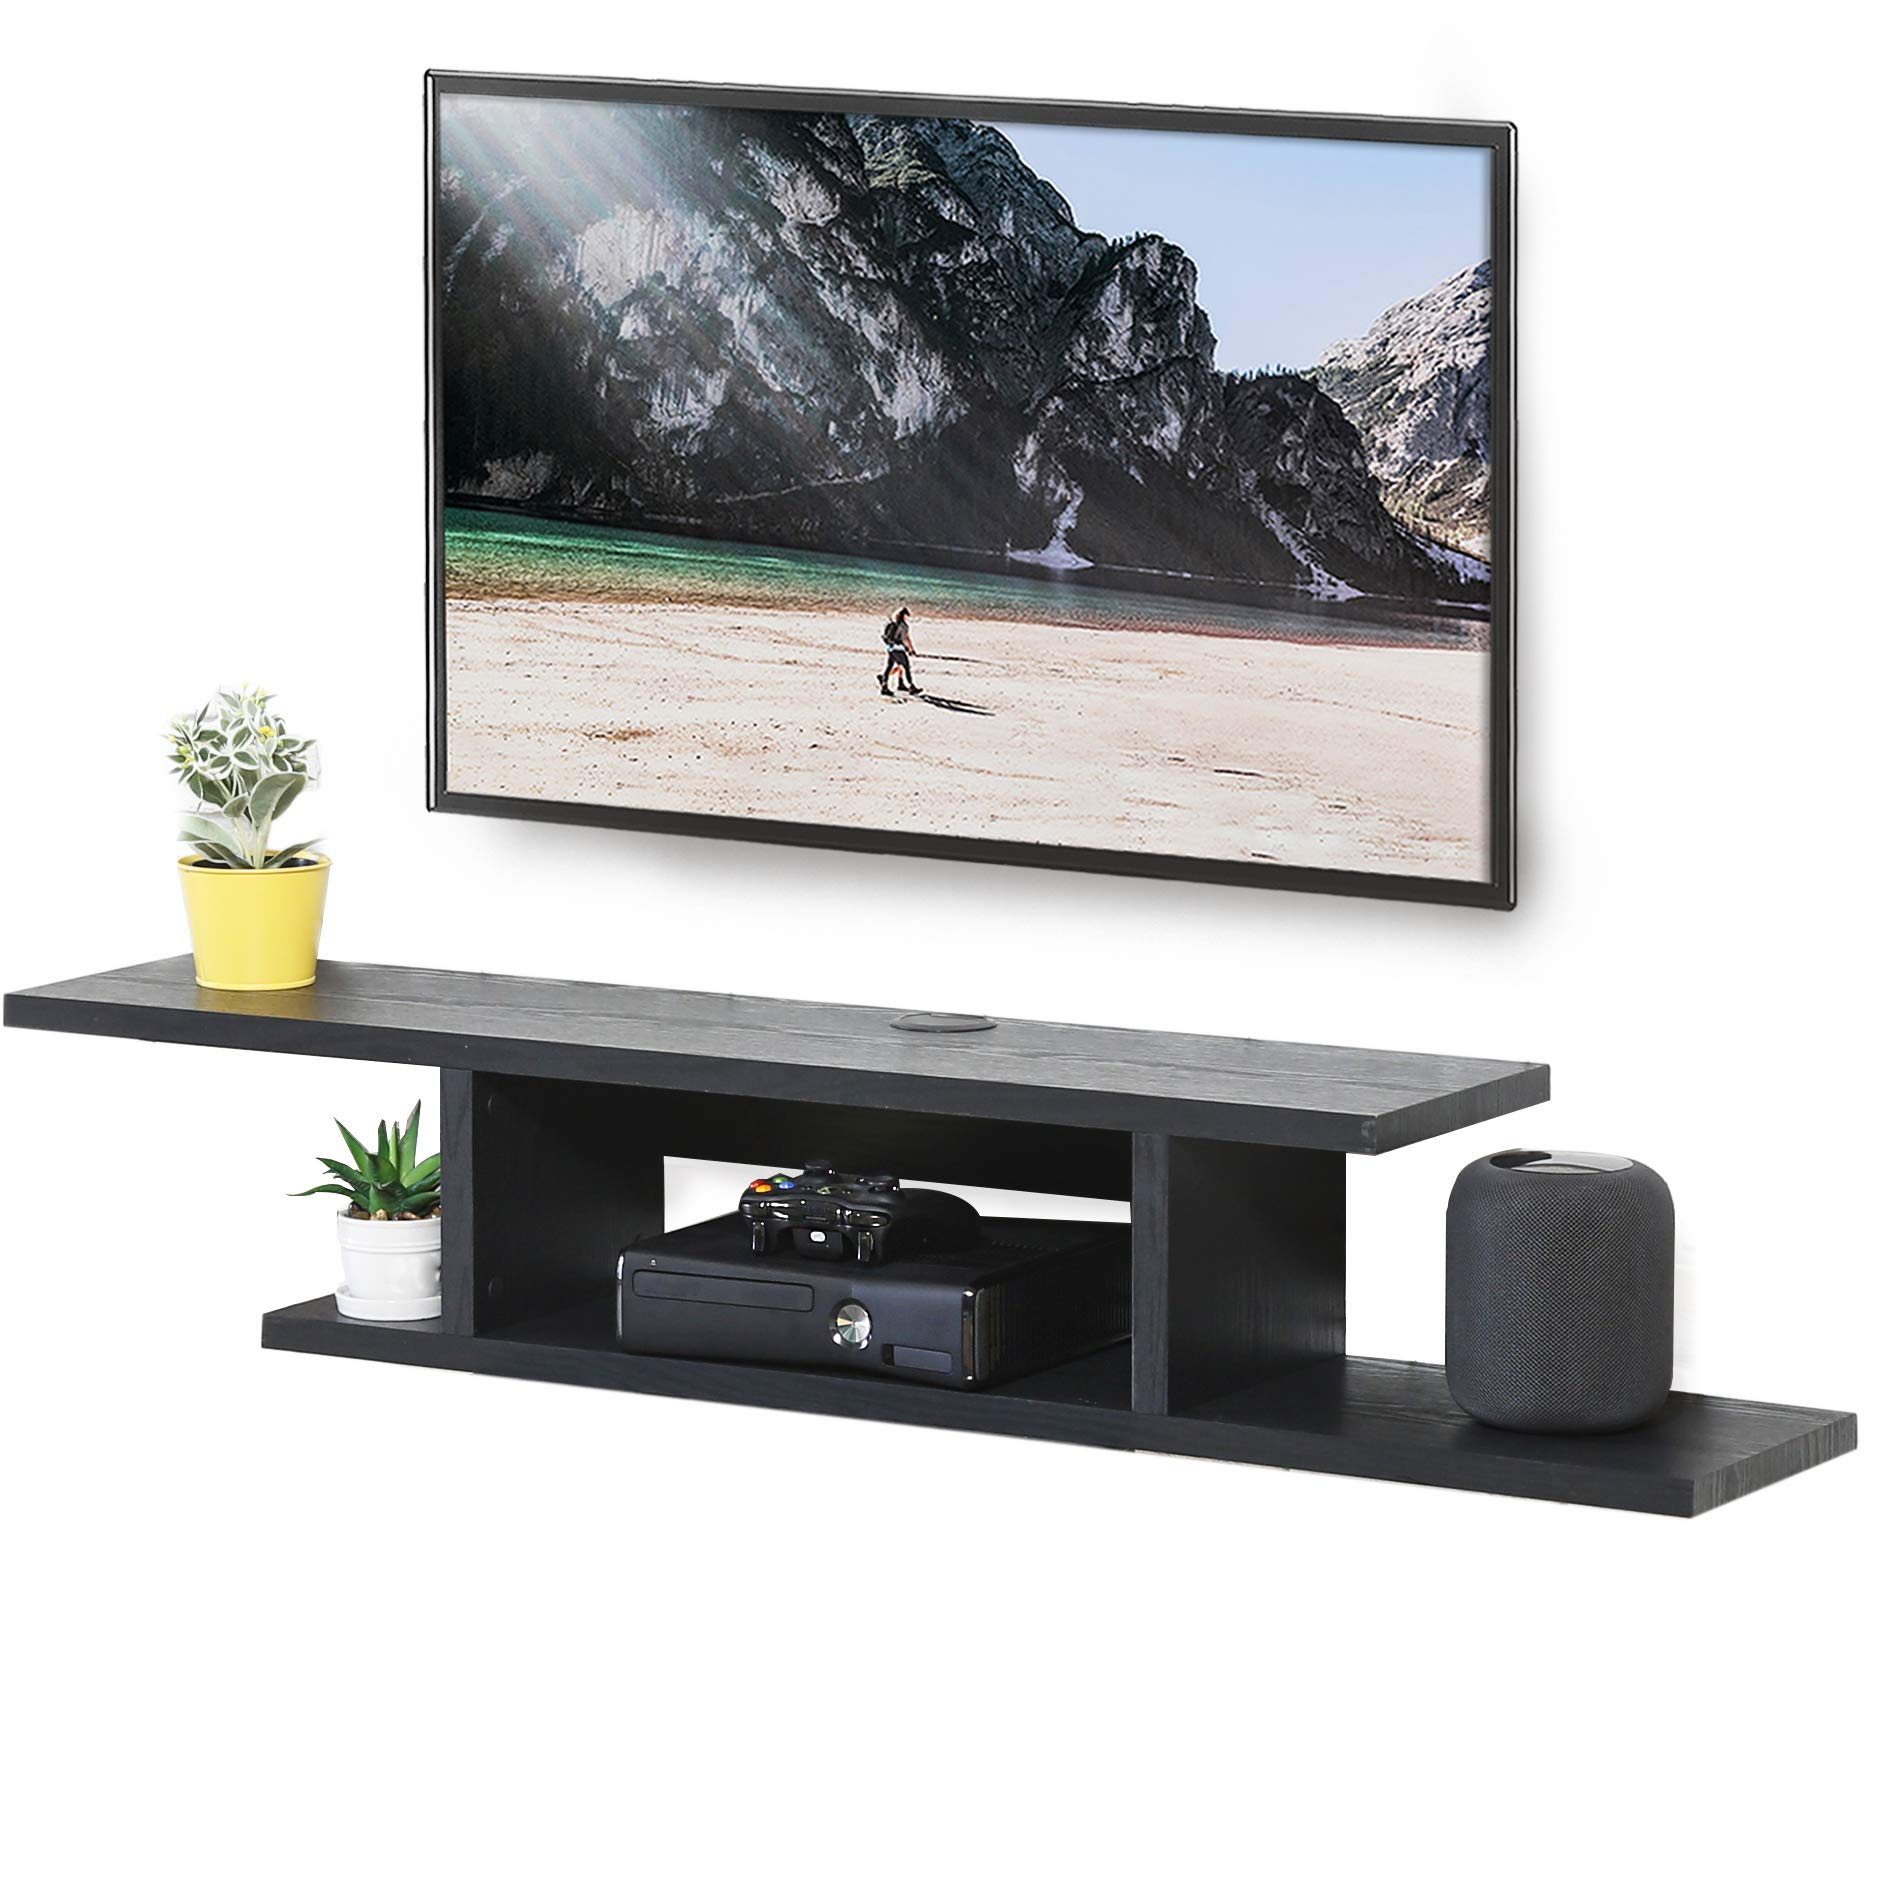 FITUEYES Wall Mounted Media Console Floating TV Stand Component Shelf Black Grain DS211801WB by FITUEYES